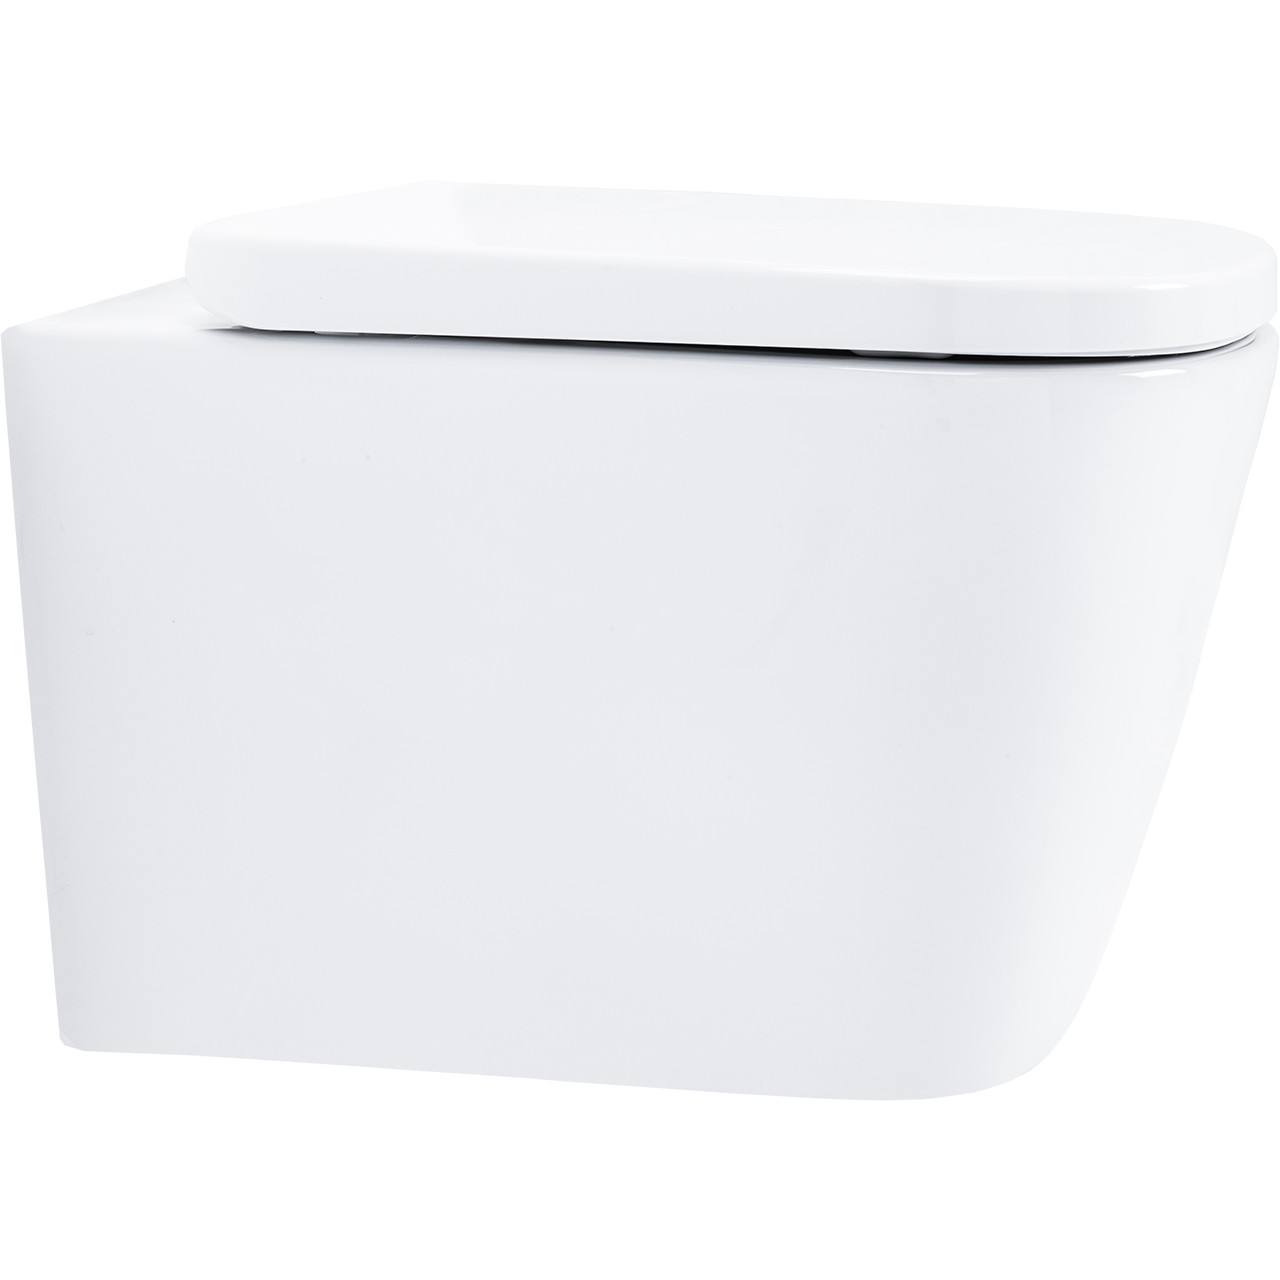 Galata Wall Hung Toilet with Slow Close Seat Side